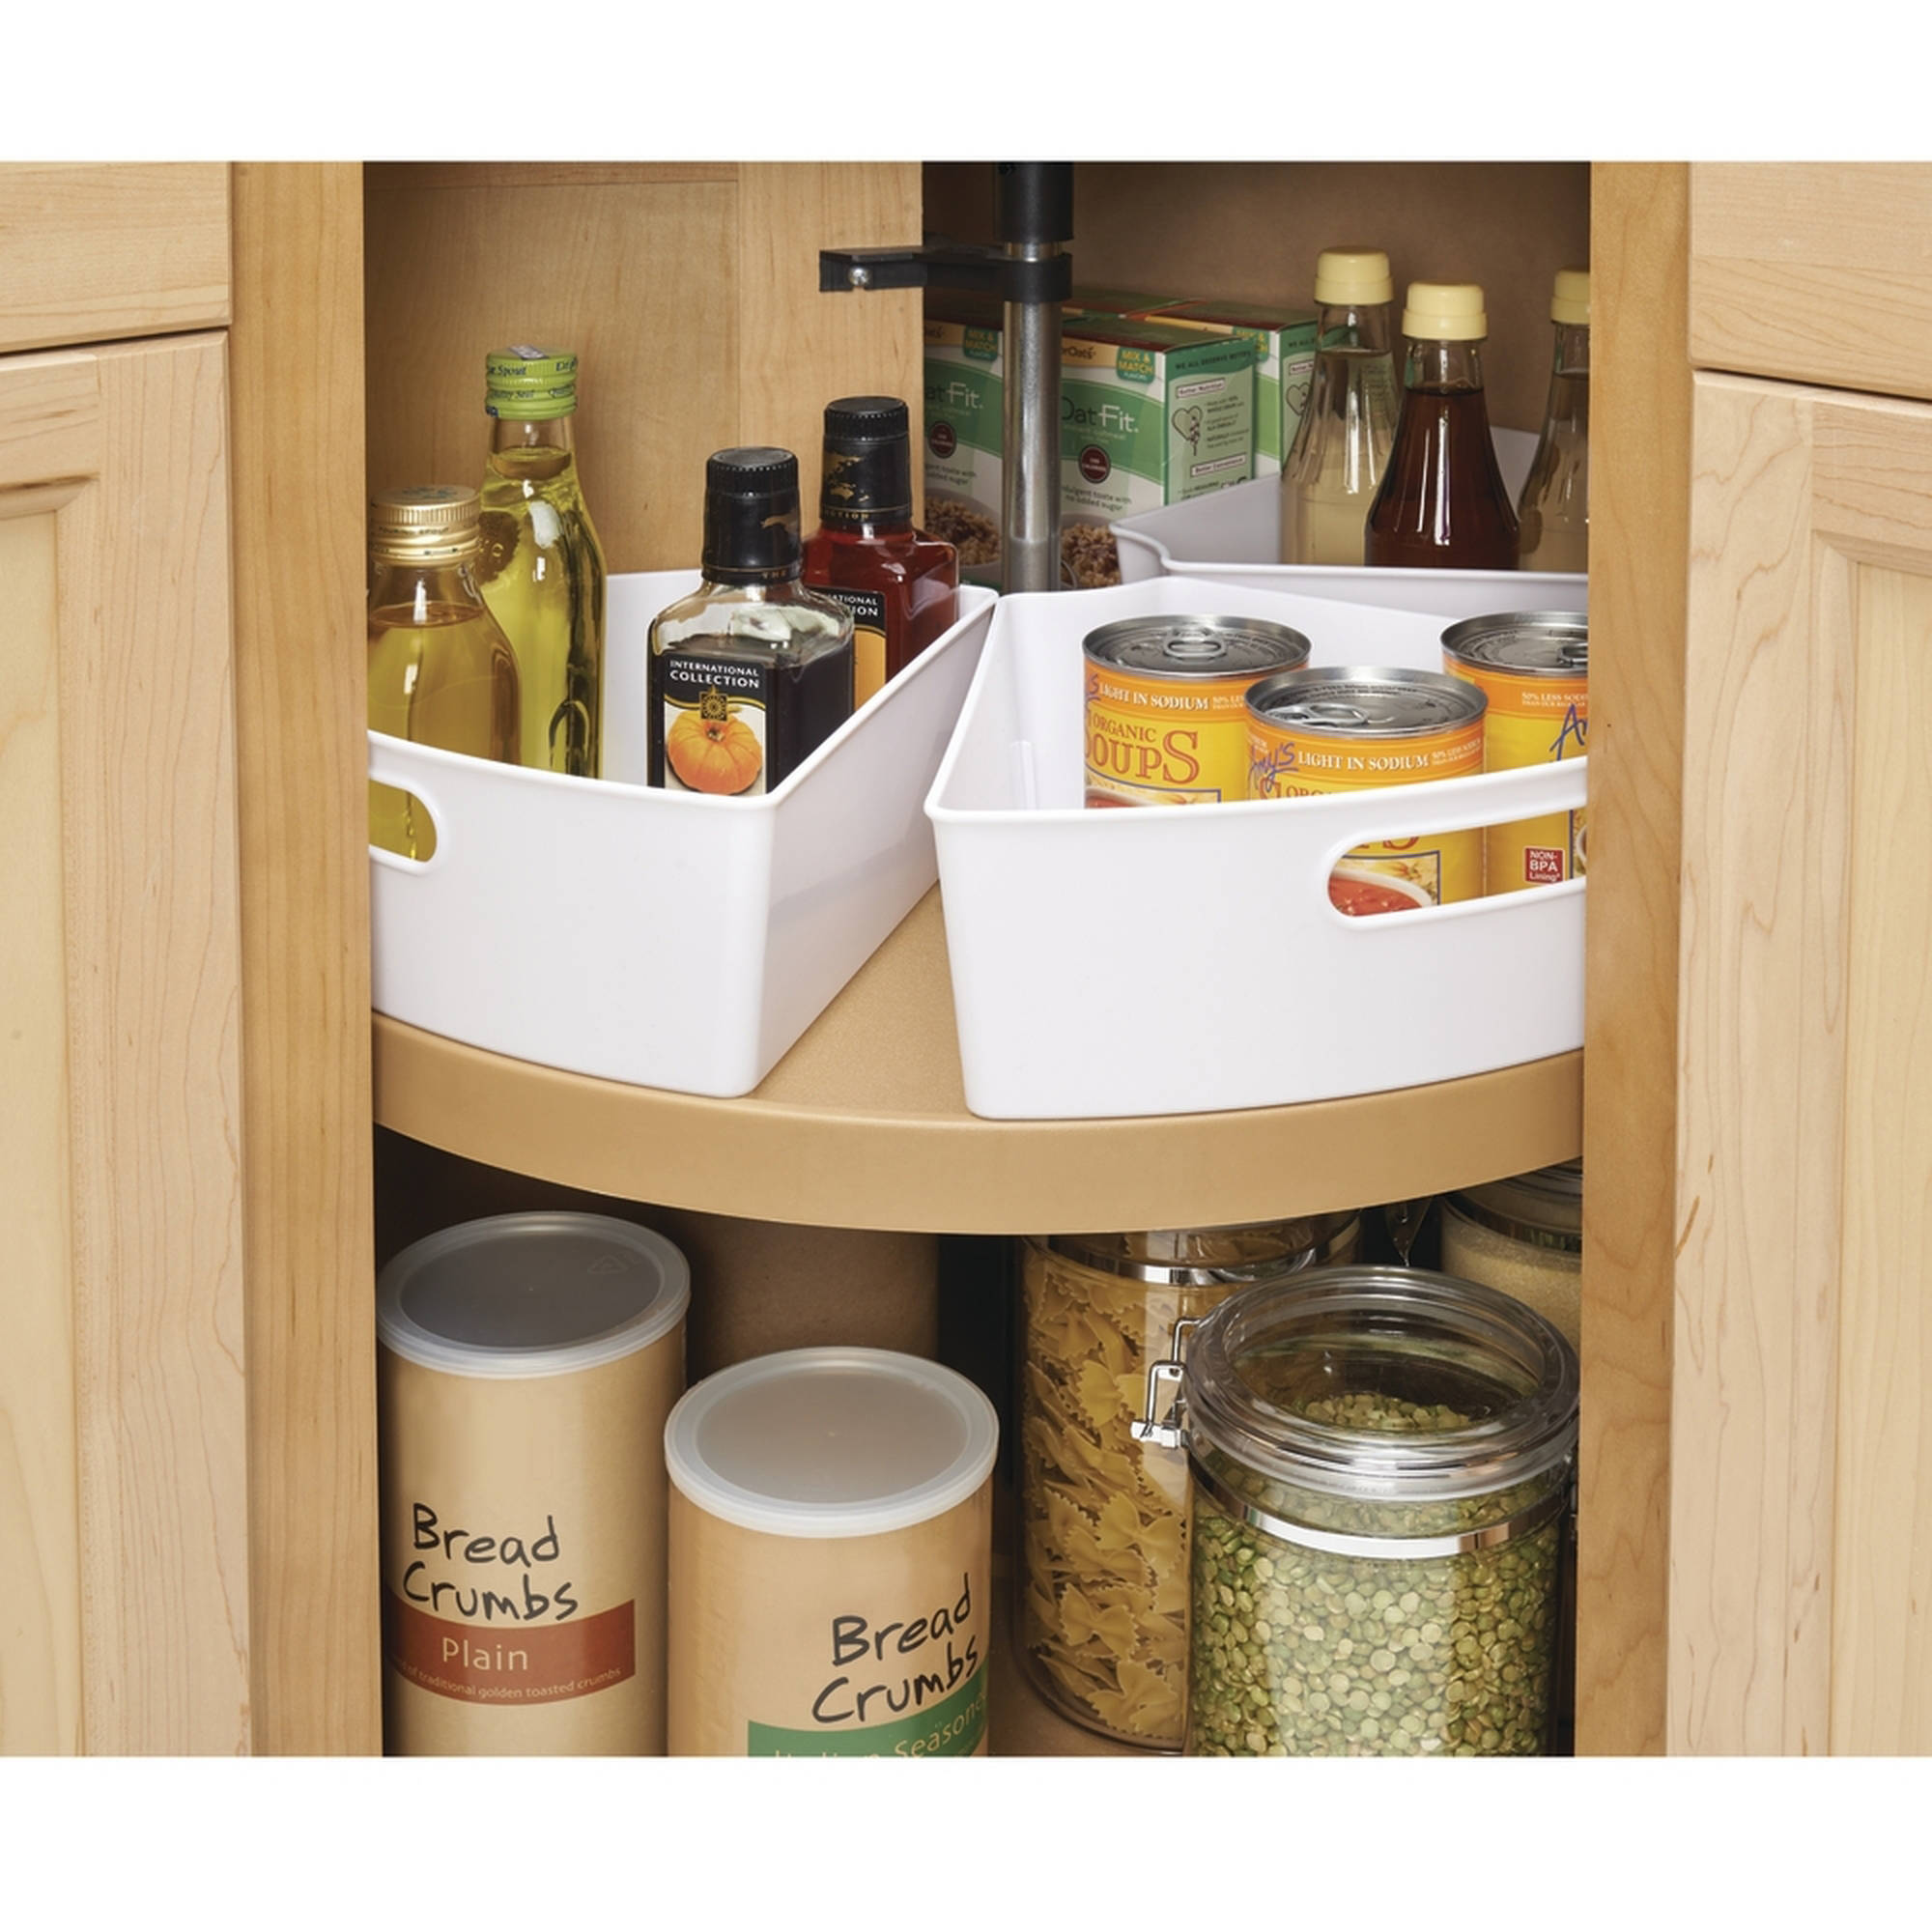 kitchen organizers interdesign lazy susan kitchen cabinet organizer storage binz, 1/6, white RIHUJNL